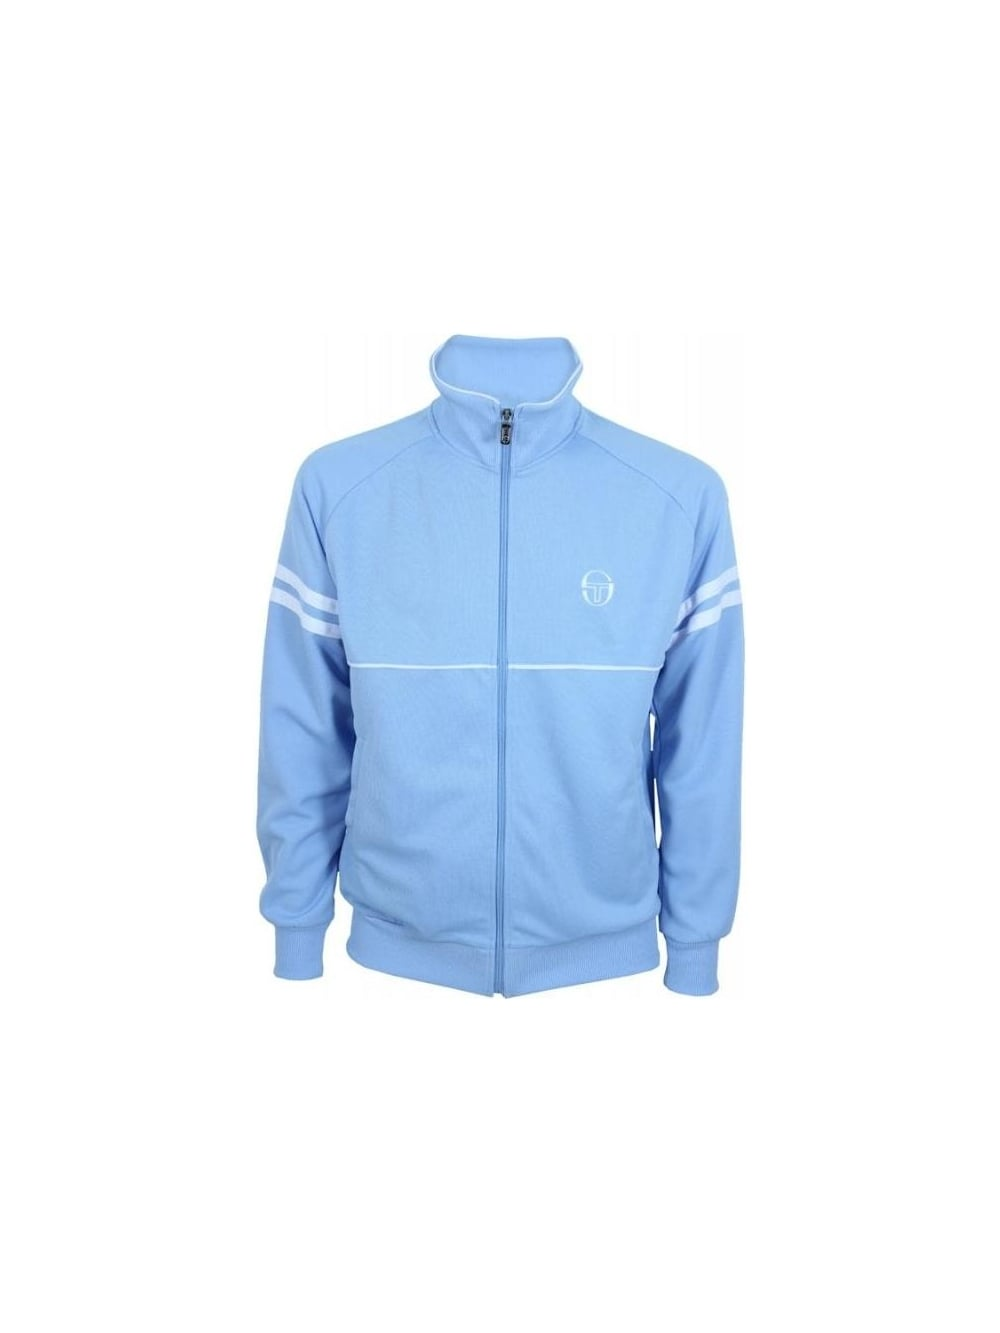 befeb987 Sergio Tacchini Nord Star Track Top in Placid Blue - Northern Threads